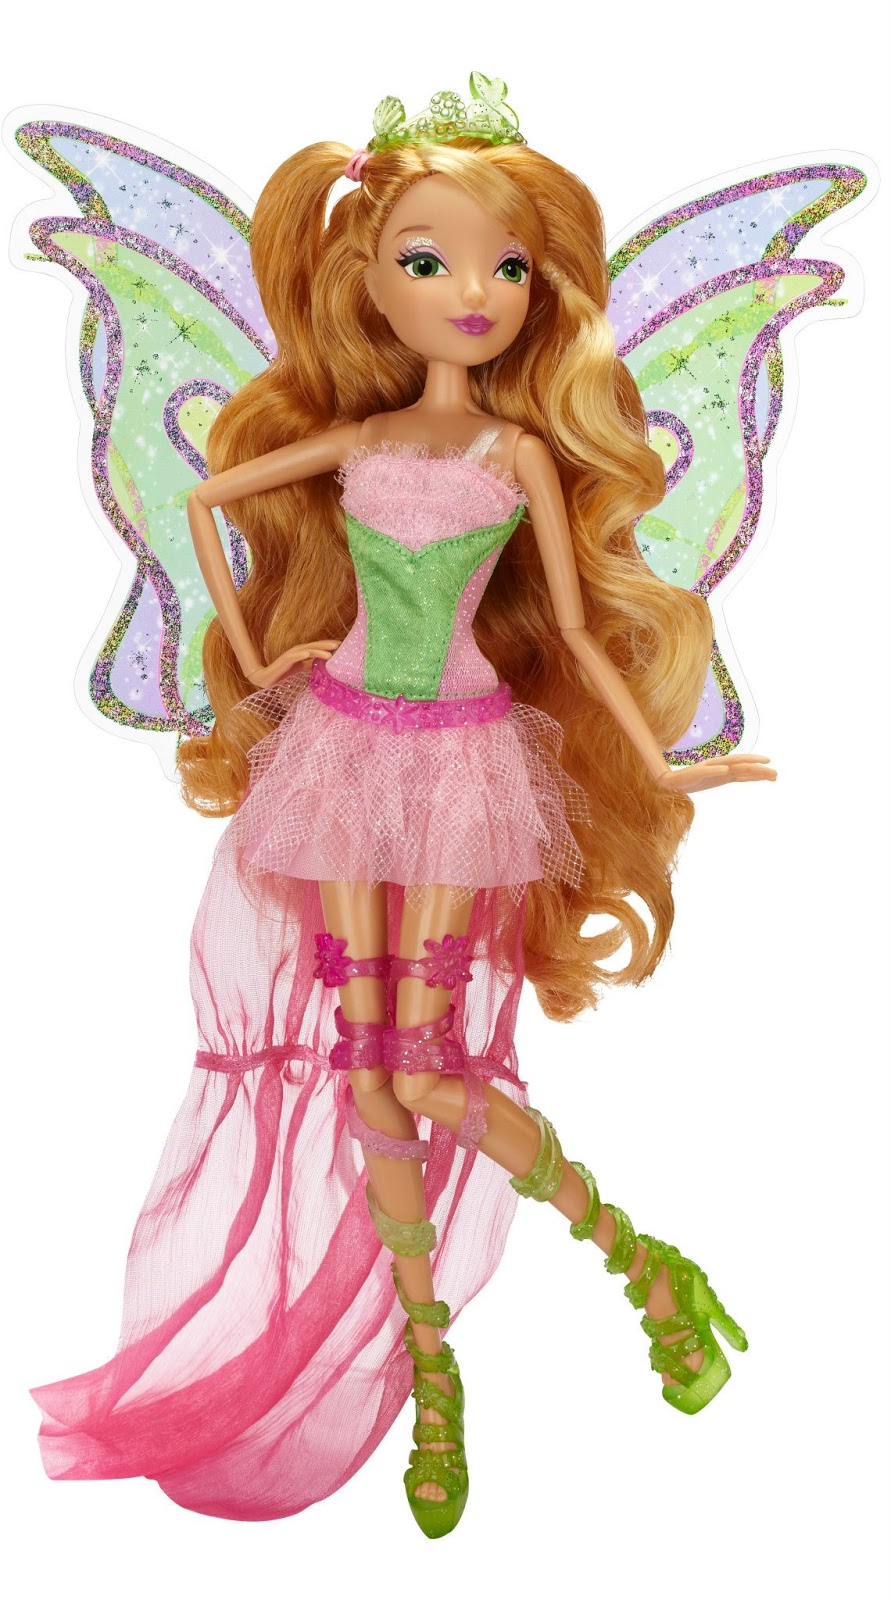 MagixJourney Winx Club Harmonix Dolls! BloomStella